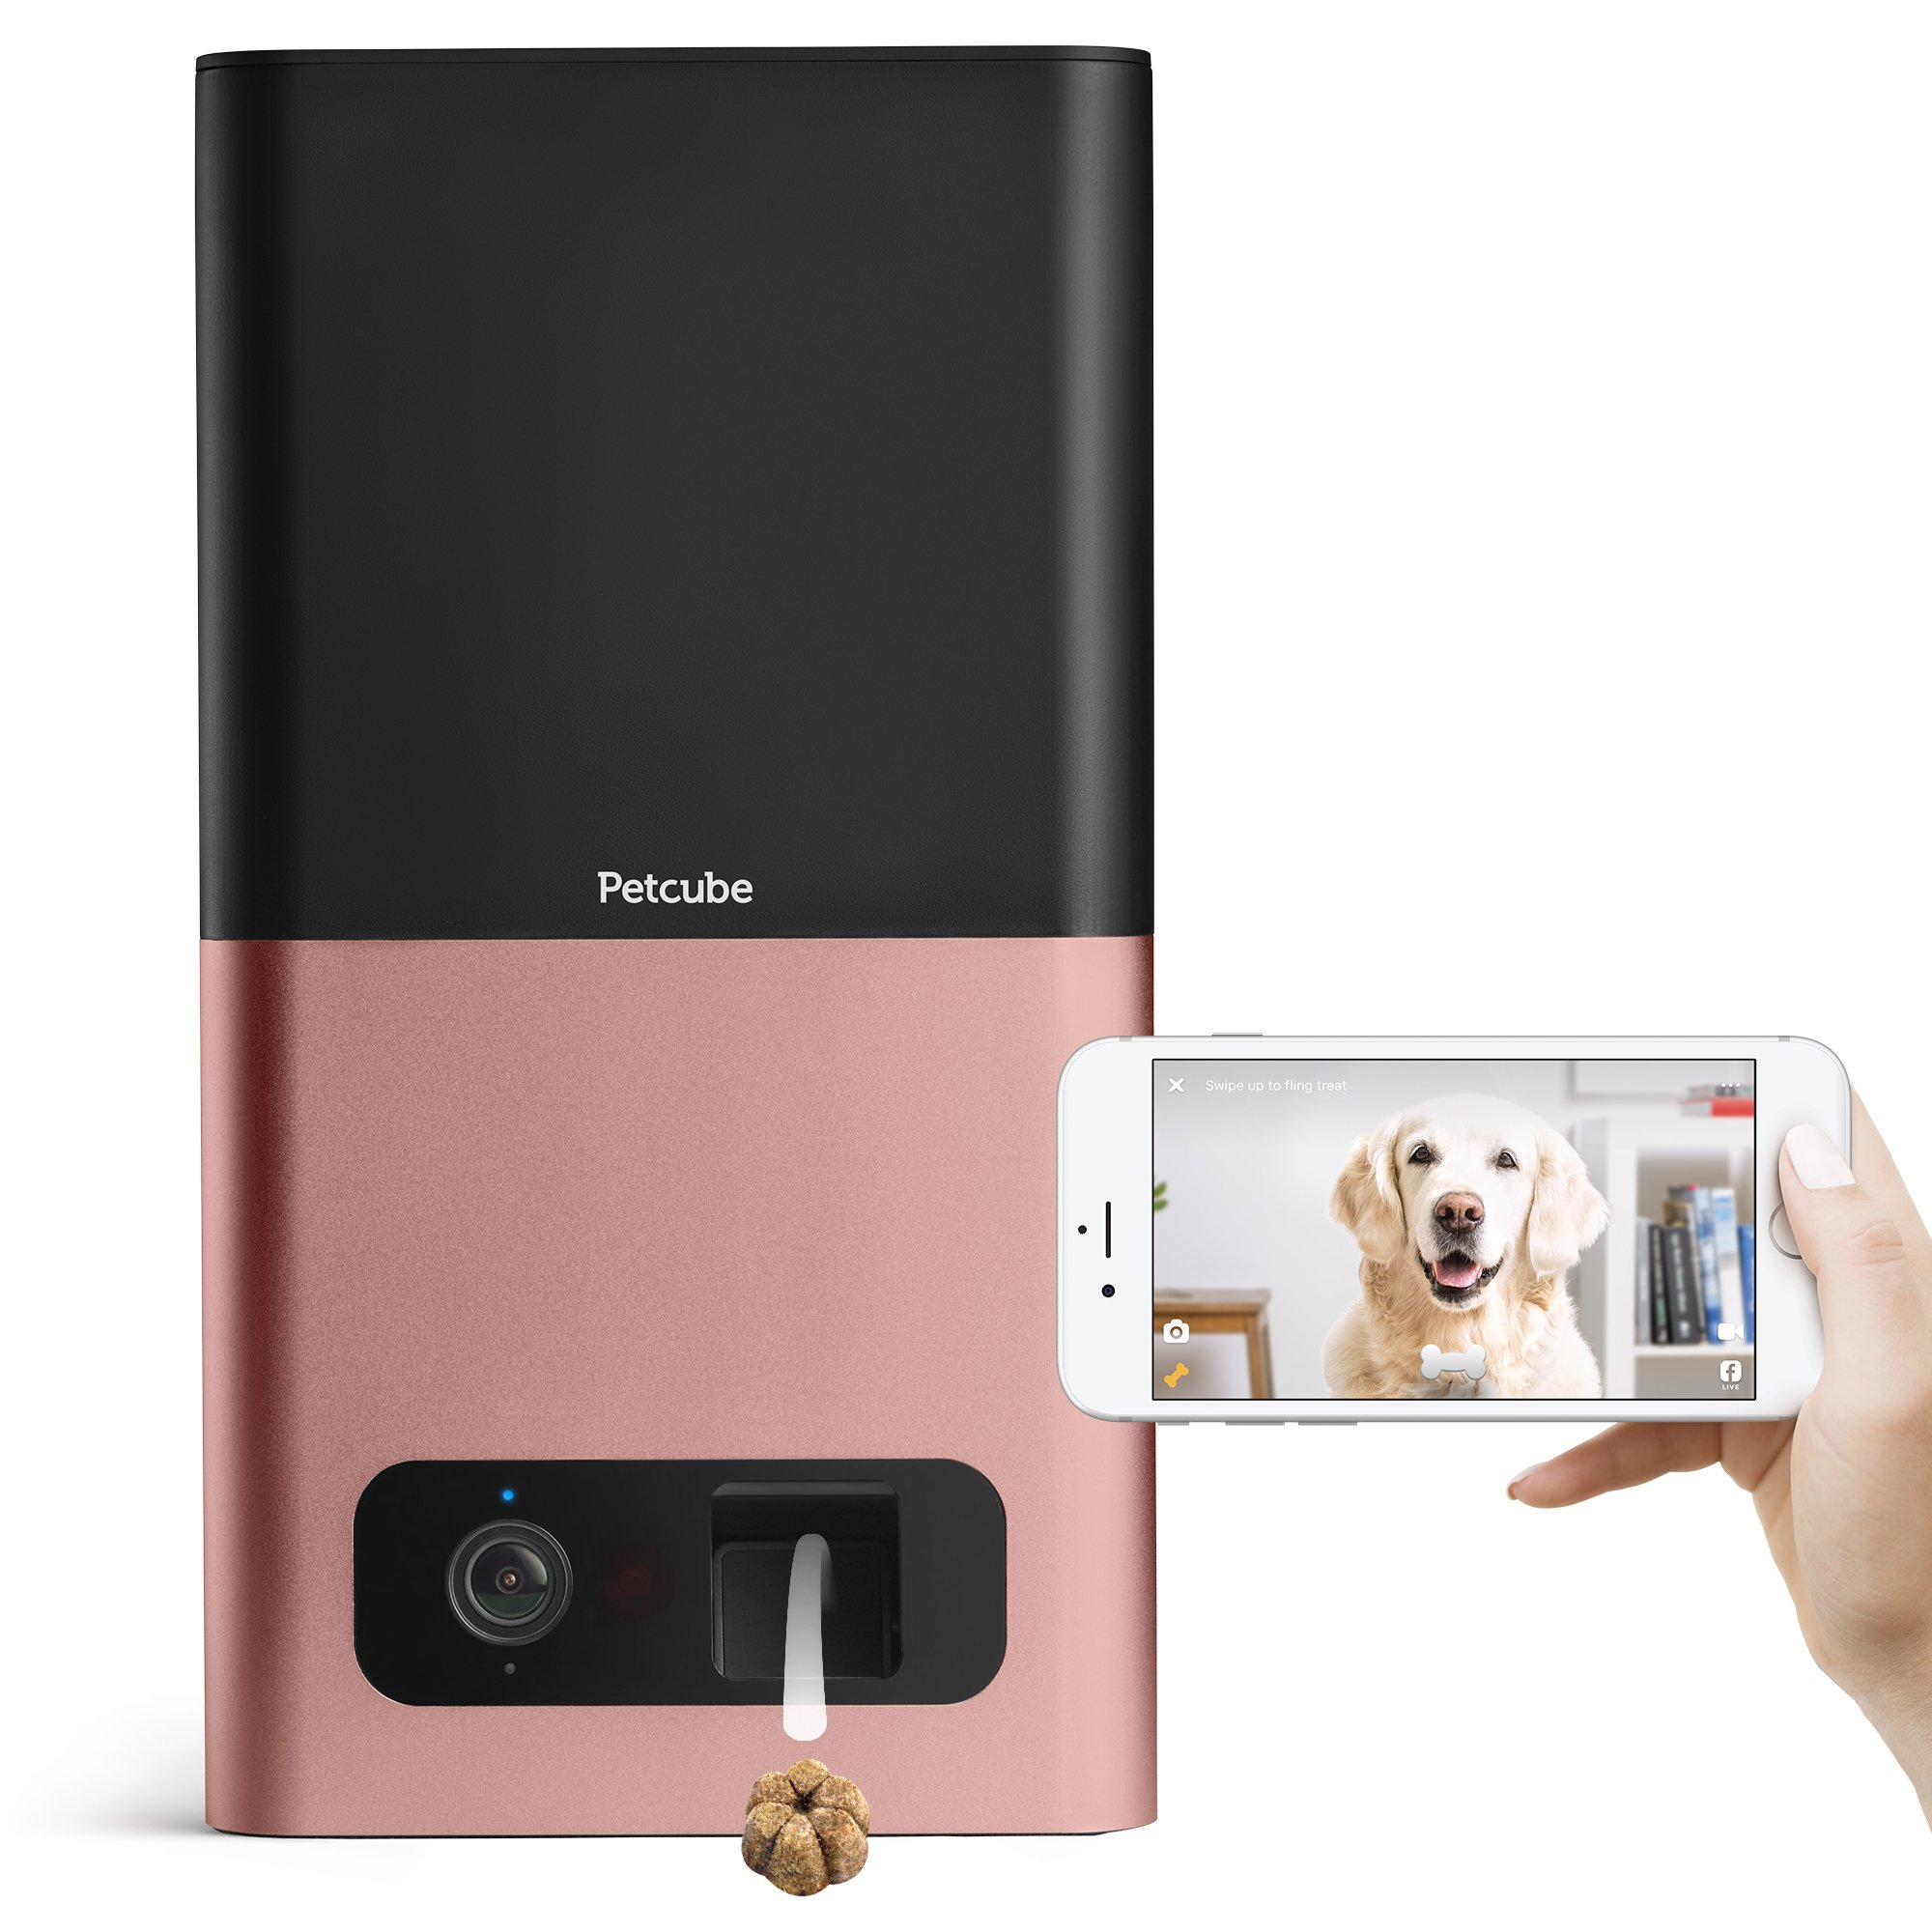 Petcube Bites Wi-Fi Pet Camera with Treat Dispenser: 2-Way Audio, HD 1080p Video and Night Vision, for dogs and cats. Compatible with Amazon Alexa (As seen on Ellen)